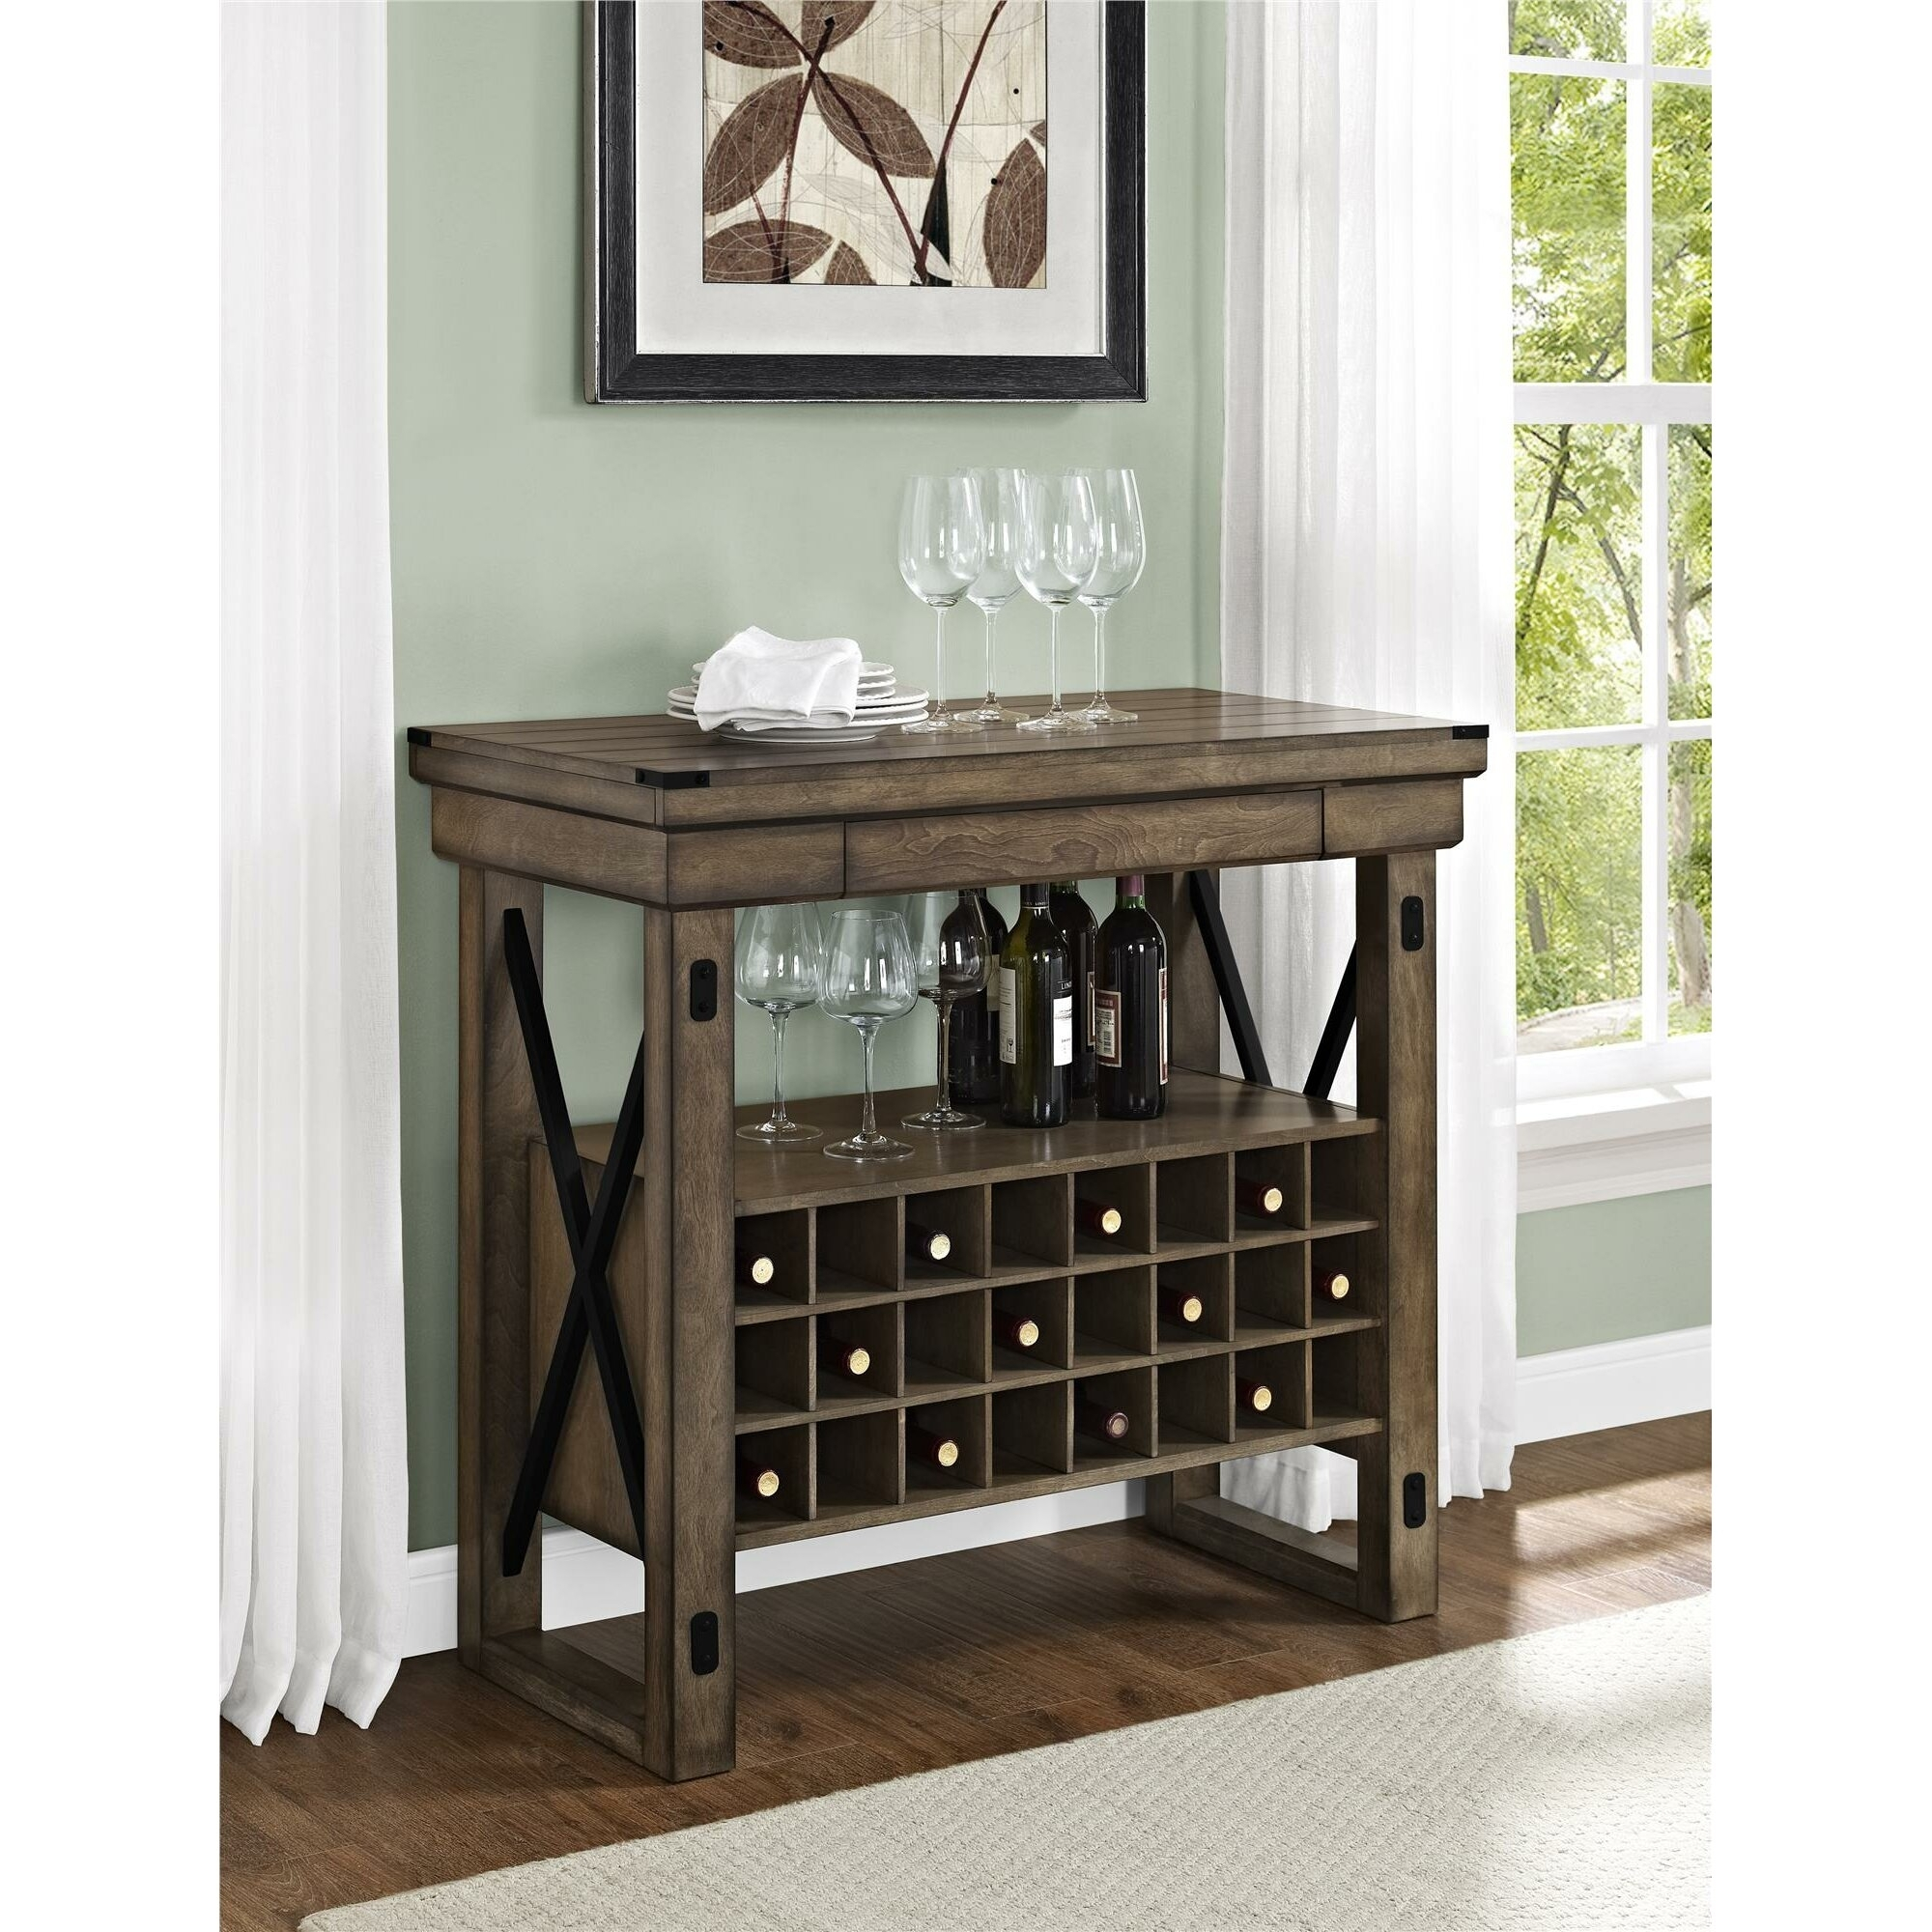 Bar Designs For Small Spaces: Bar Cabinets For Small Spaces